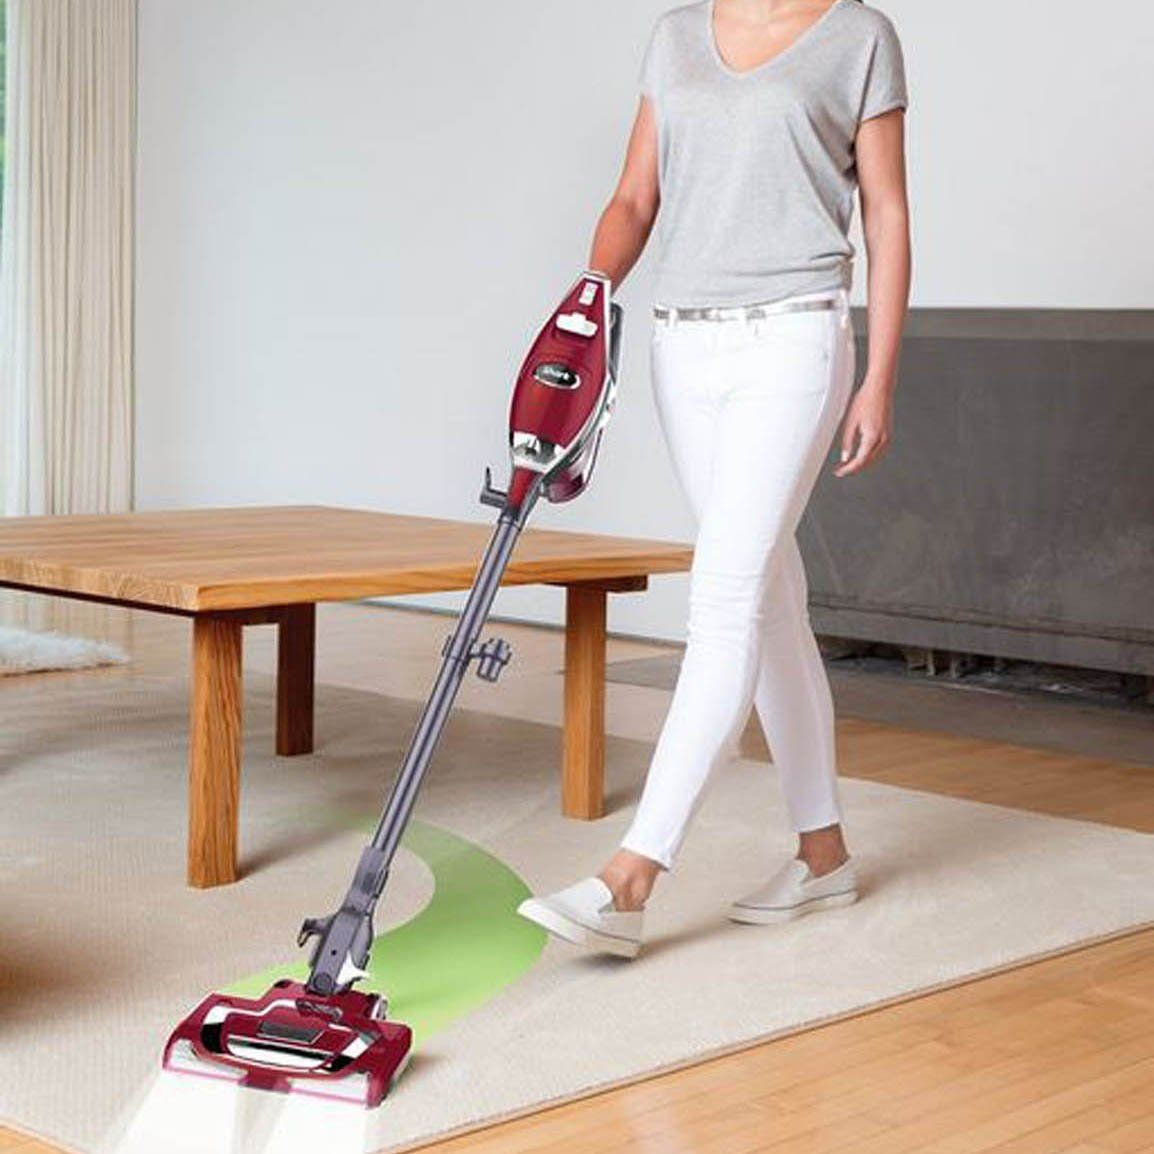 Pin on Vacuum Cleaners & Floor Care